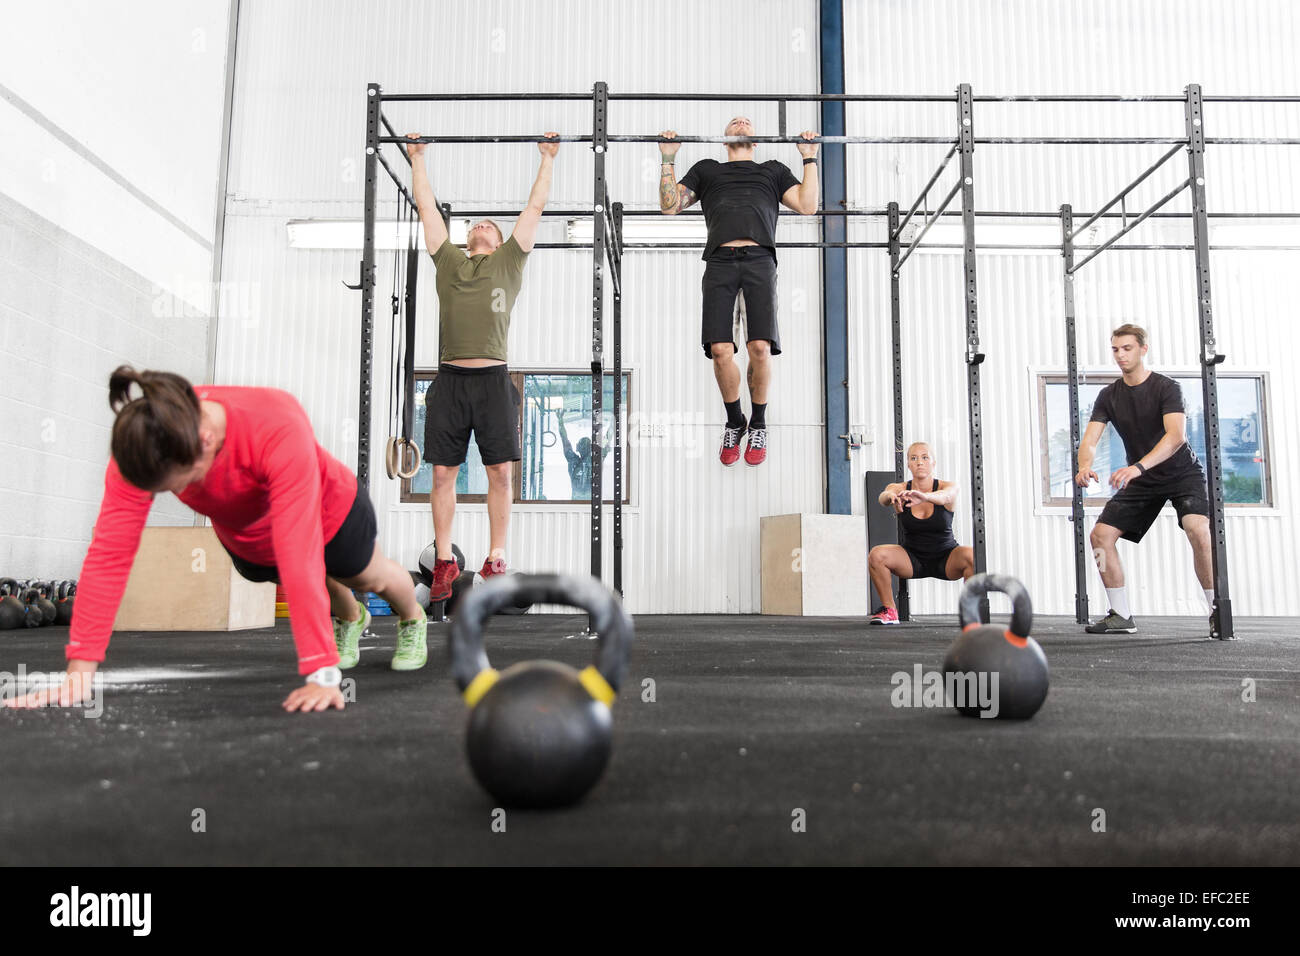 Groupe Crossfit exercices différents trains Photo Stock